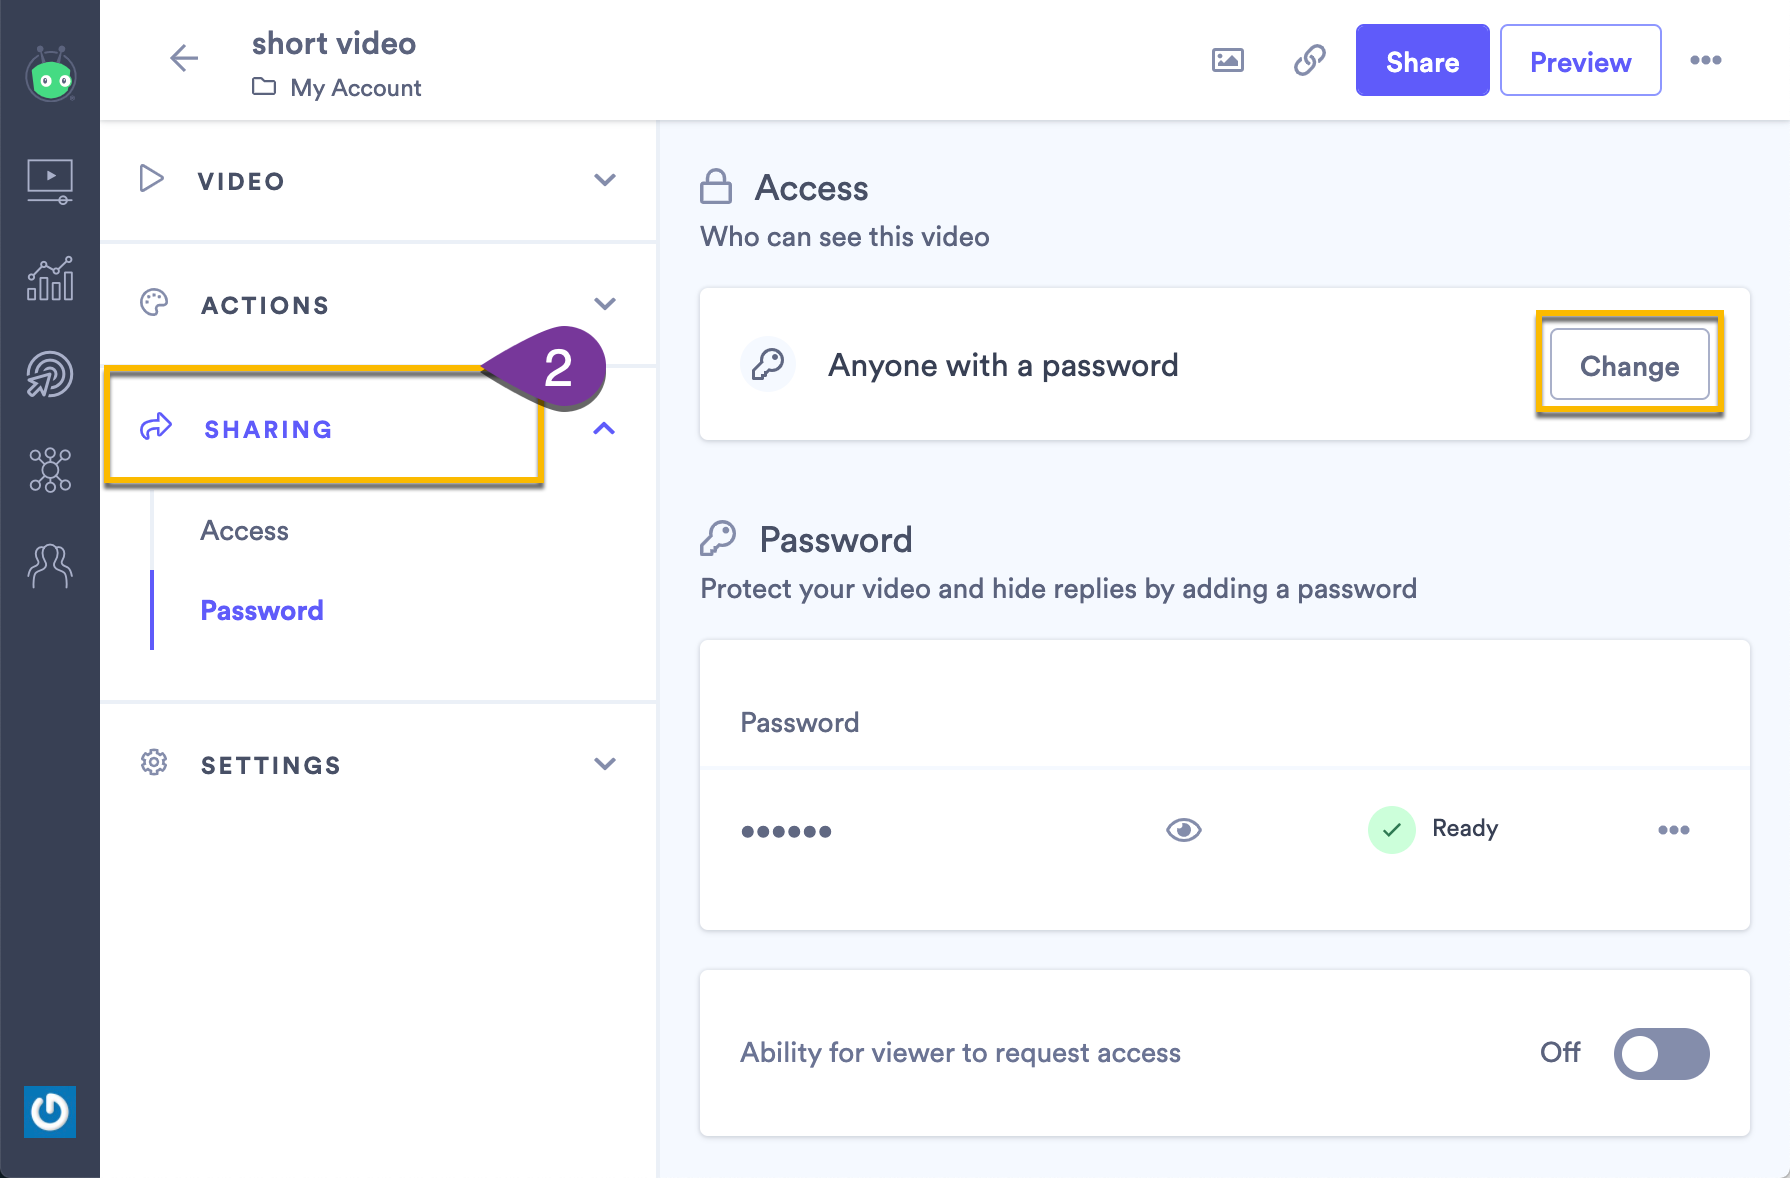 Changing the video access setting to Anyone with a password, if it is not already selected